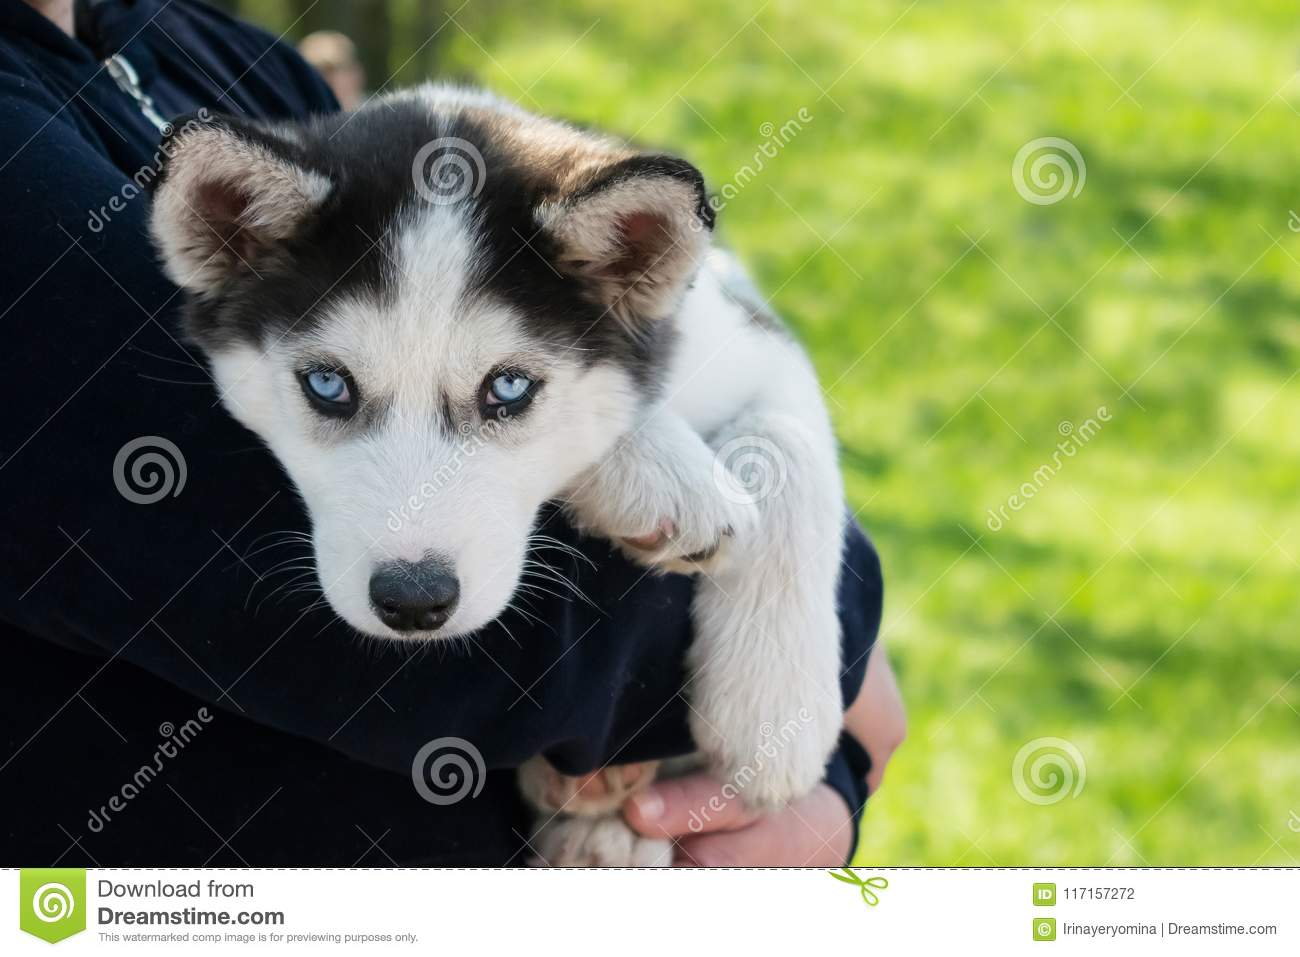 Cute Puppy Siberian Husky Black And White With Blue Eyes On The